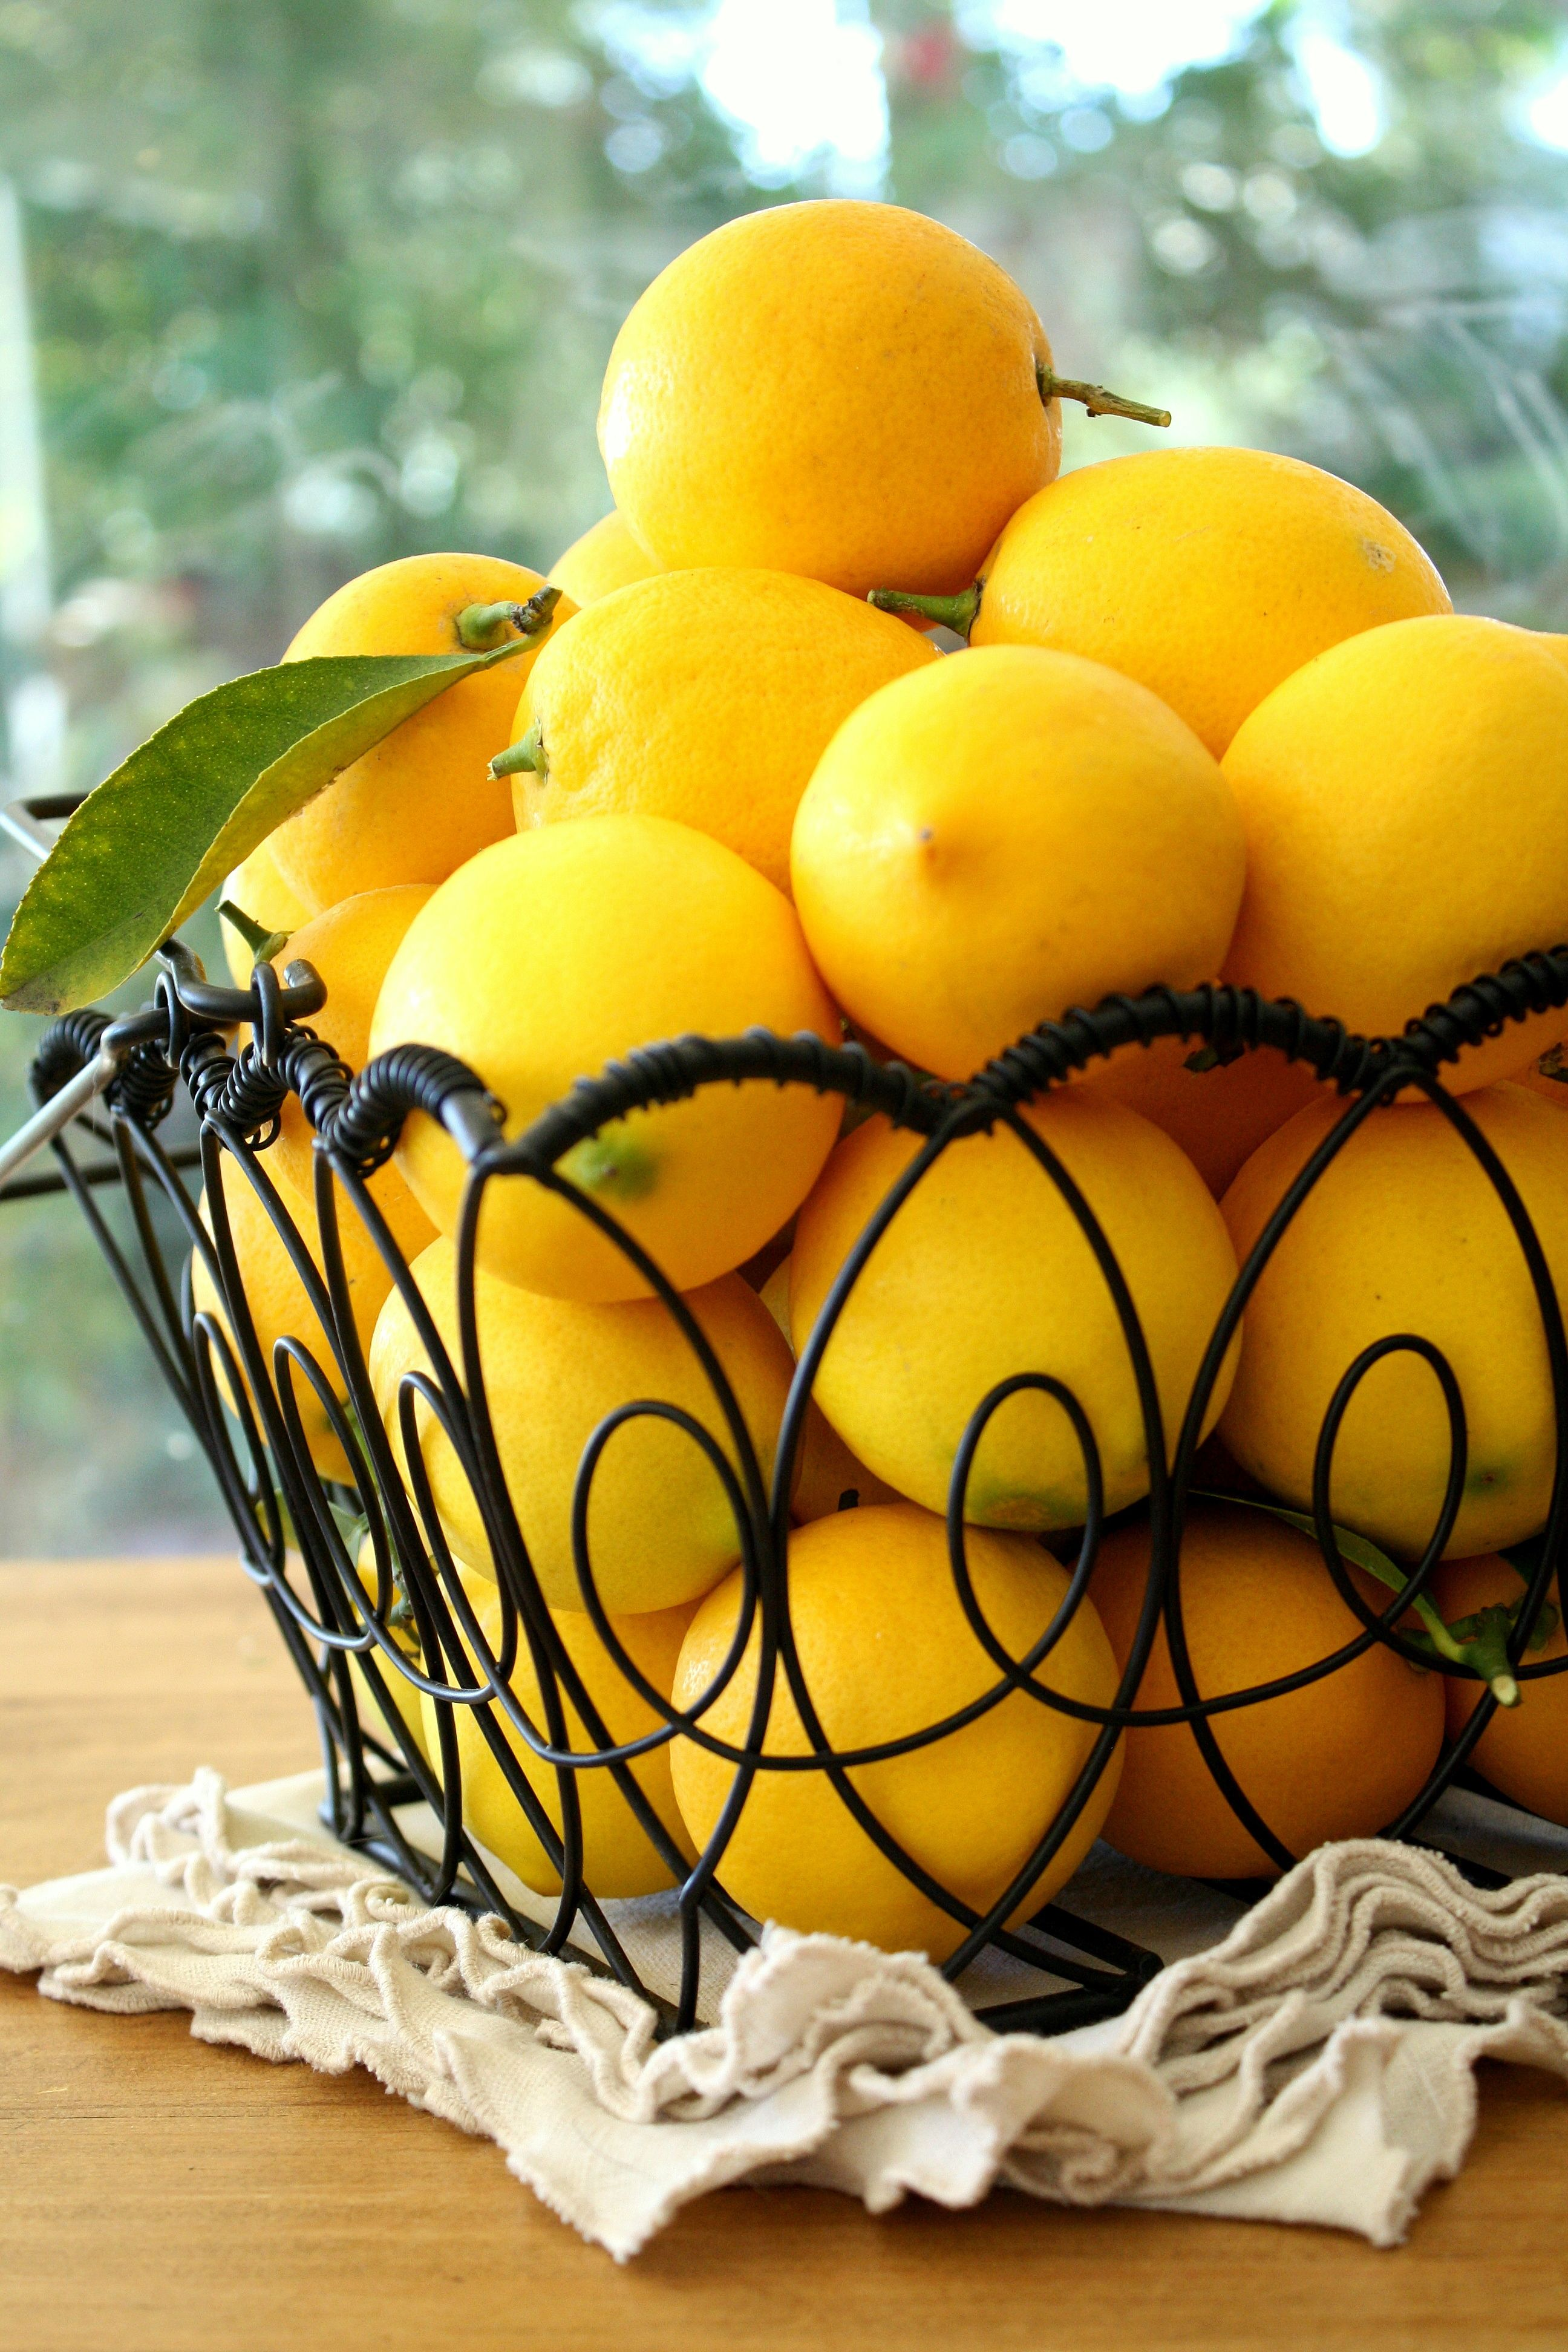 Meyer Lemons I love lemons piled high in a wire basket they